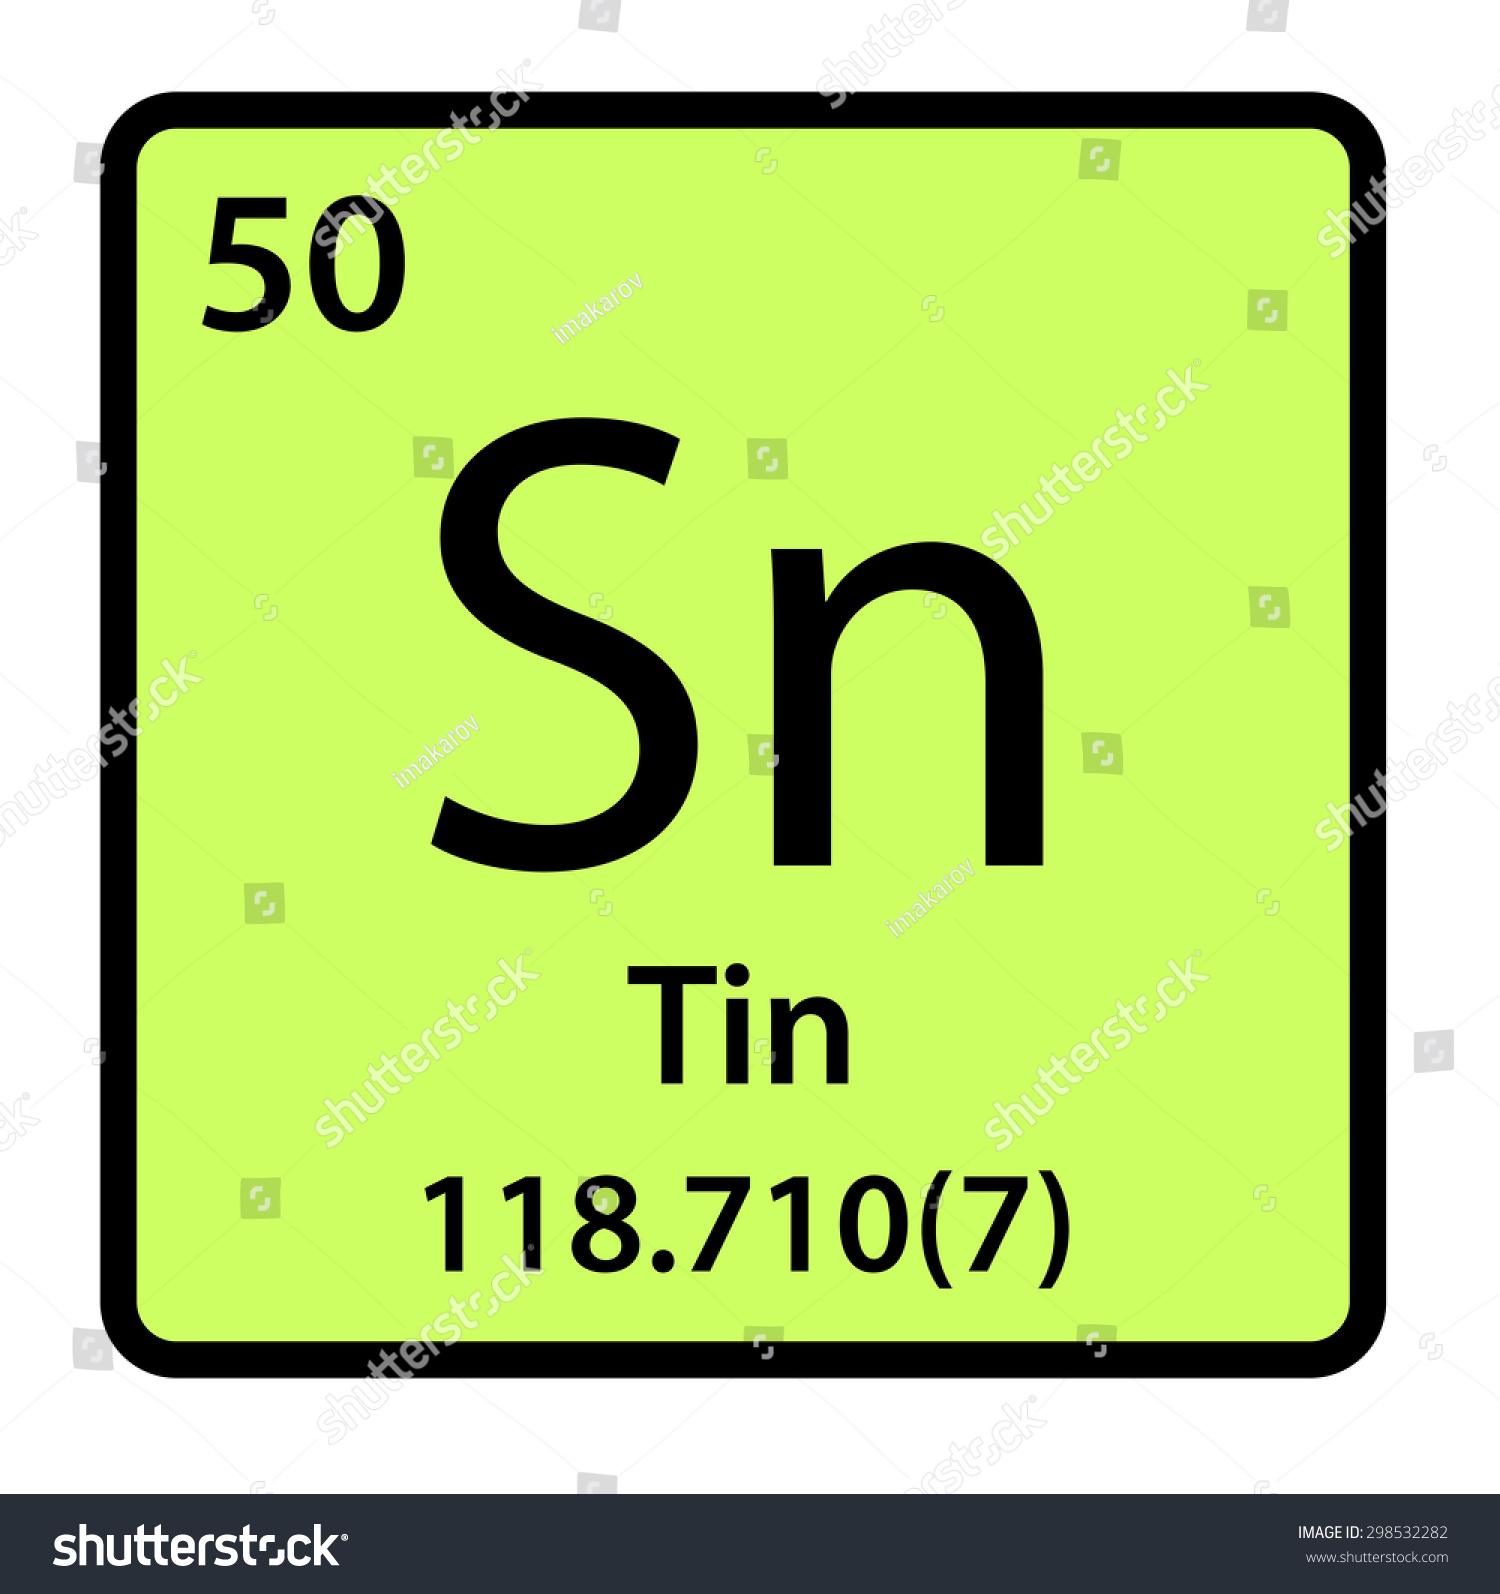 Element tin periodic table stock illustration 298532282 shutterstock element tin of the periodic table gamestrikefo Gallery